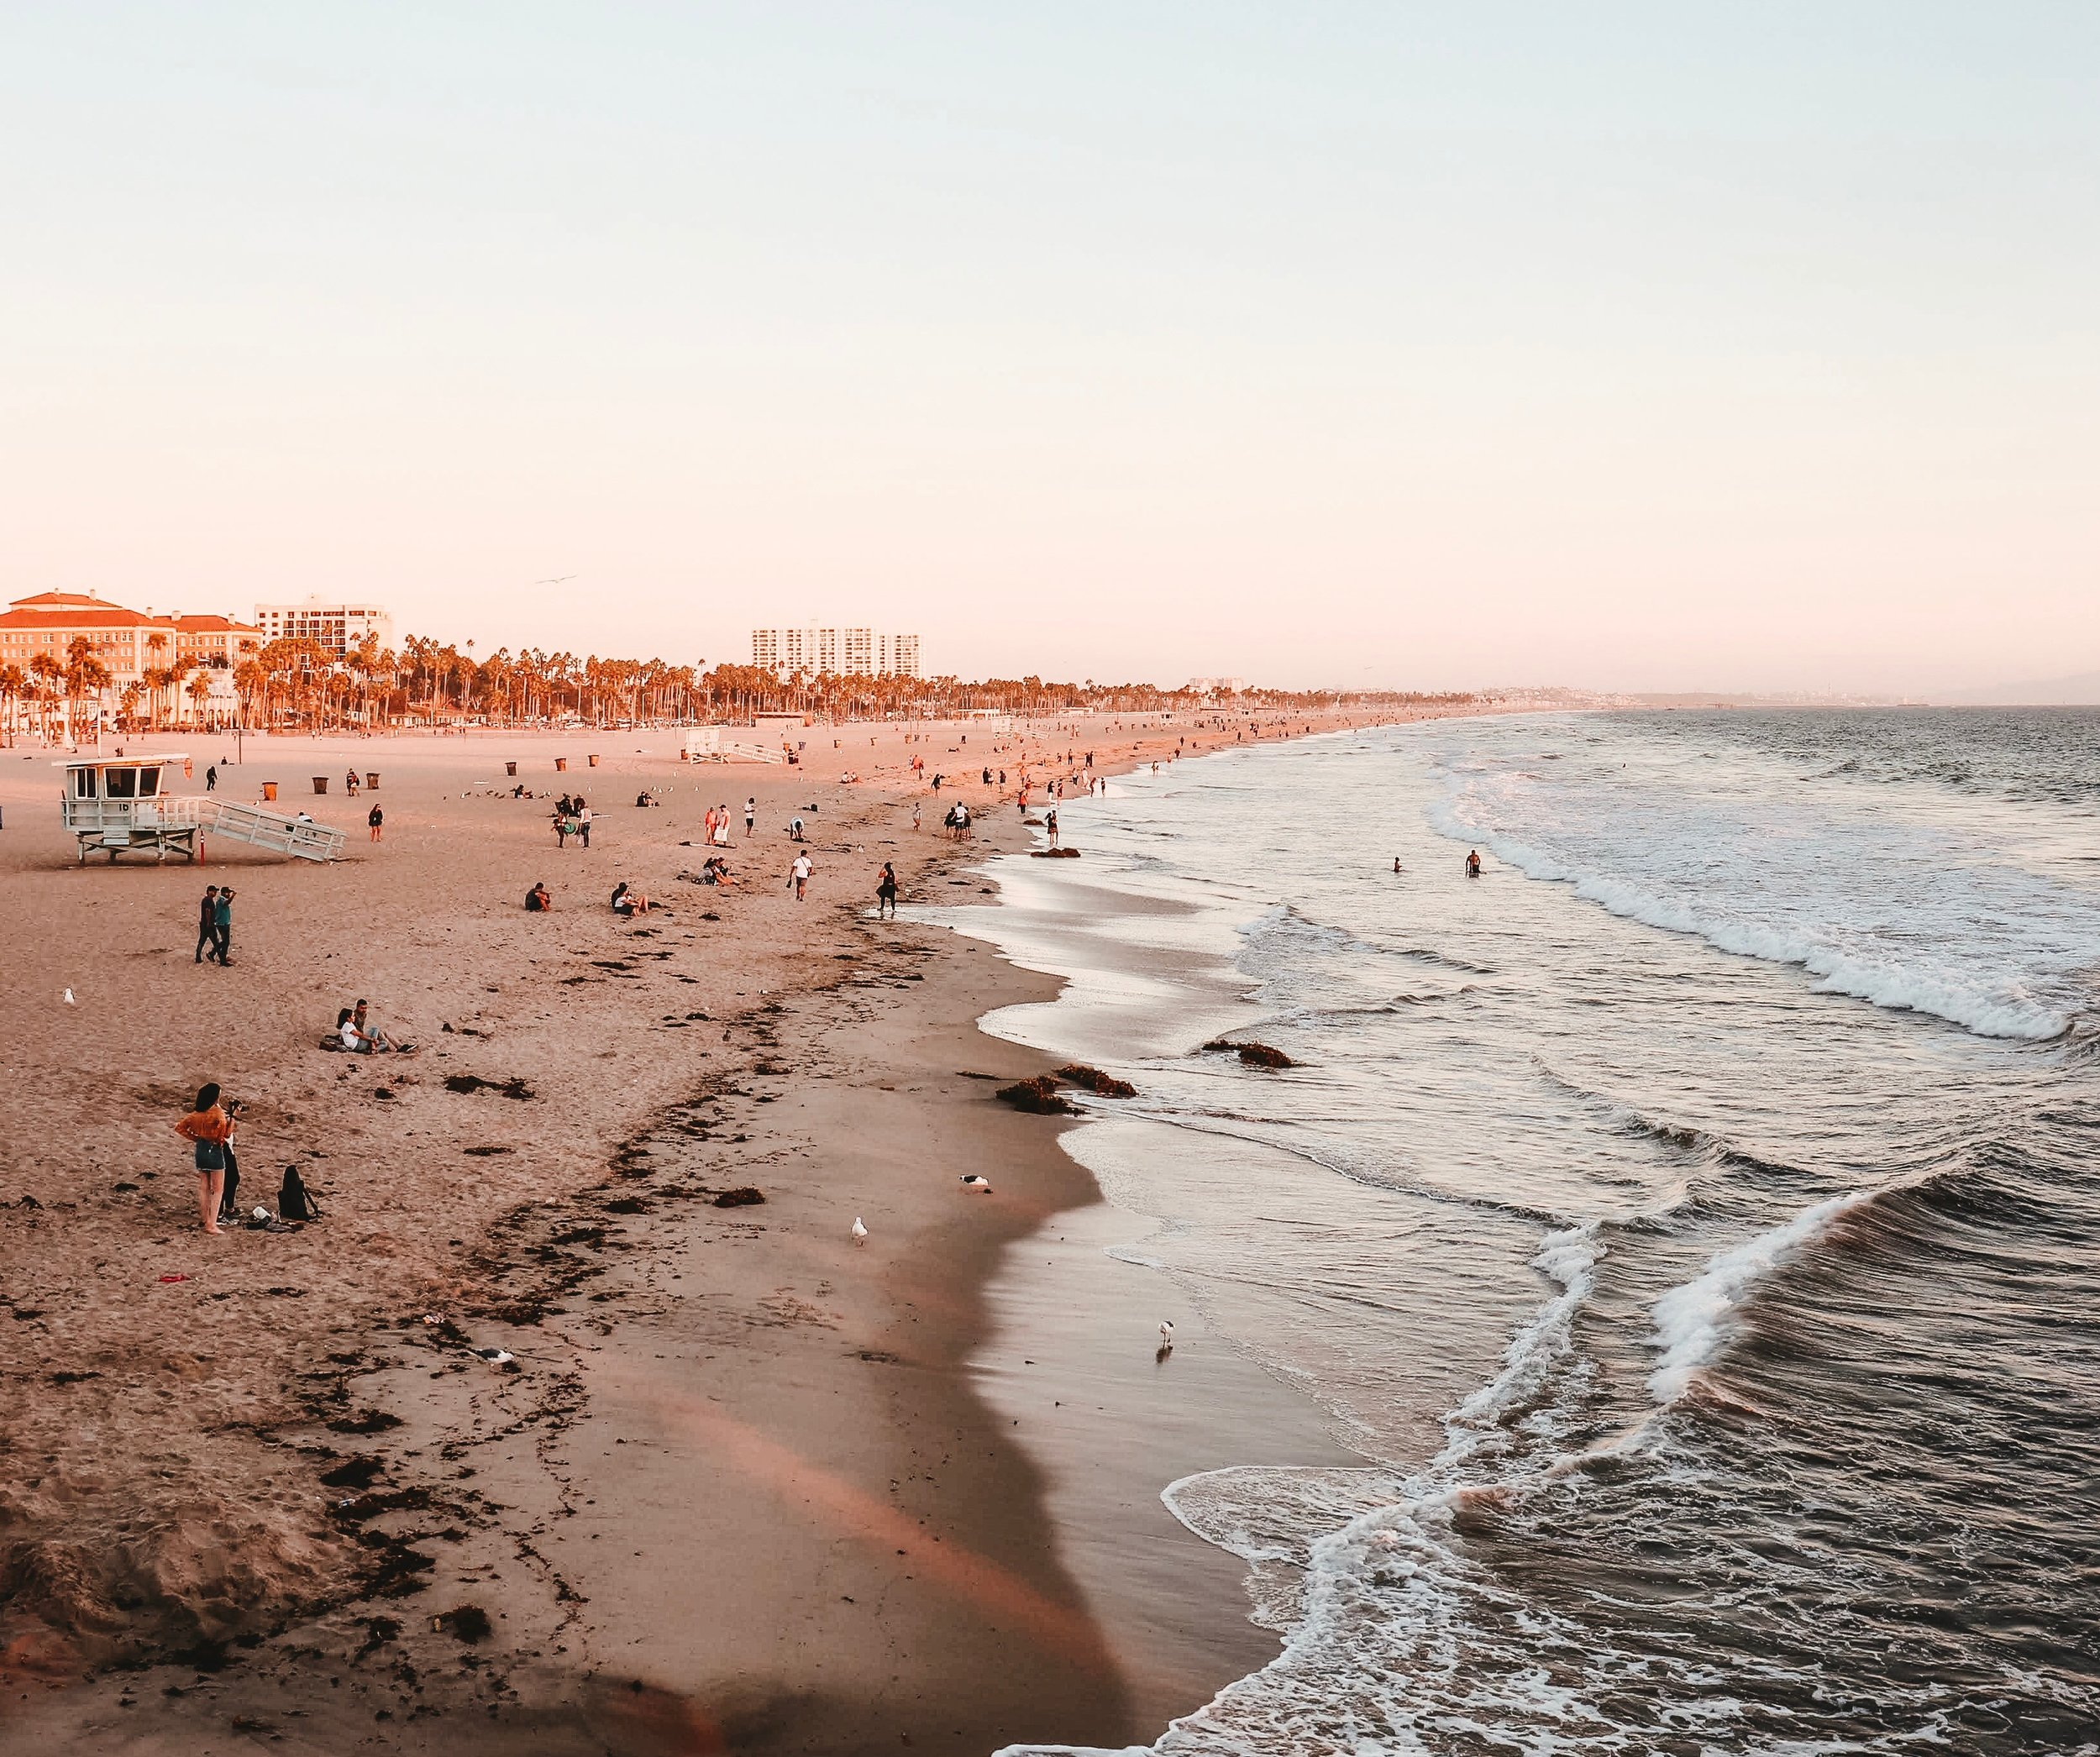 Santa Monica - Friday, August 2 - Sunday, August 4COMBINED EMLT/EWRI PRIVATE INTENSIVE